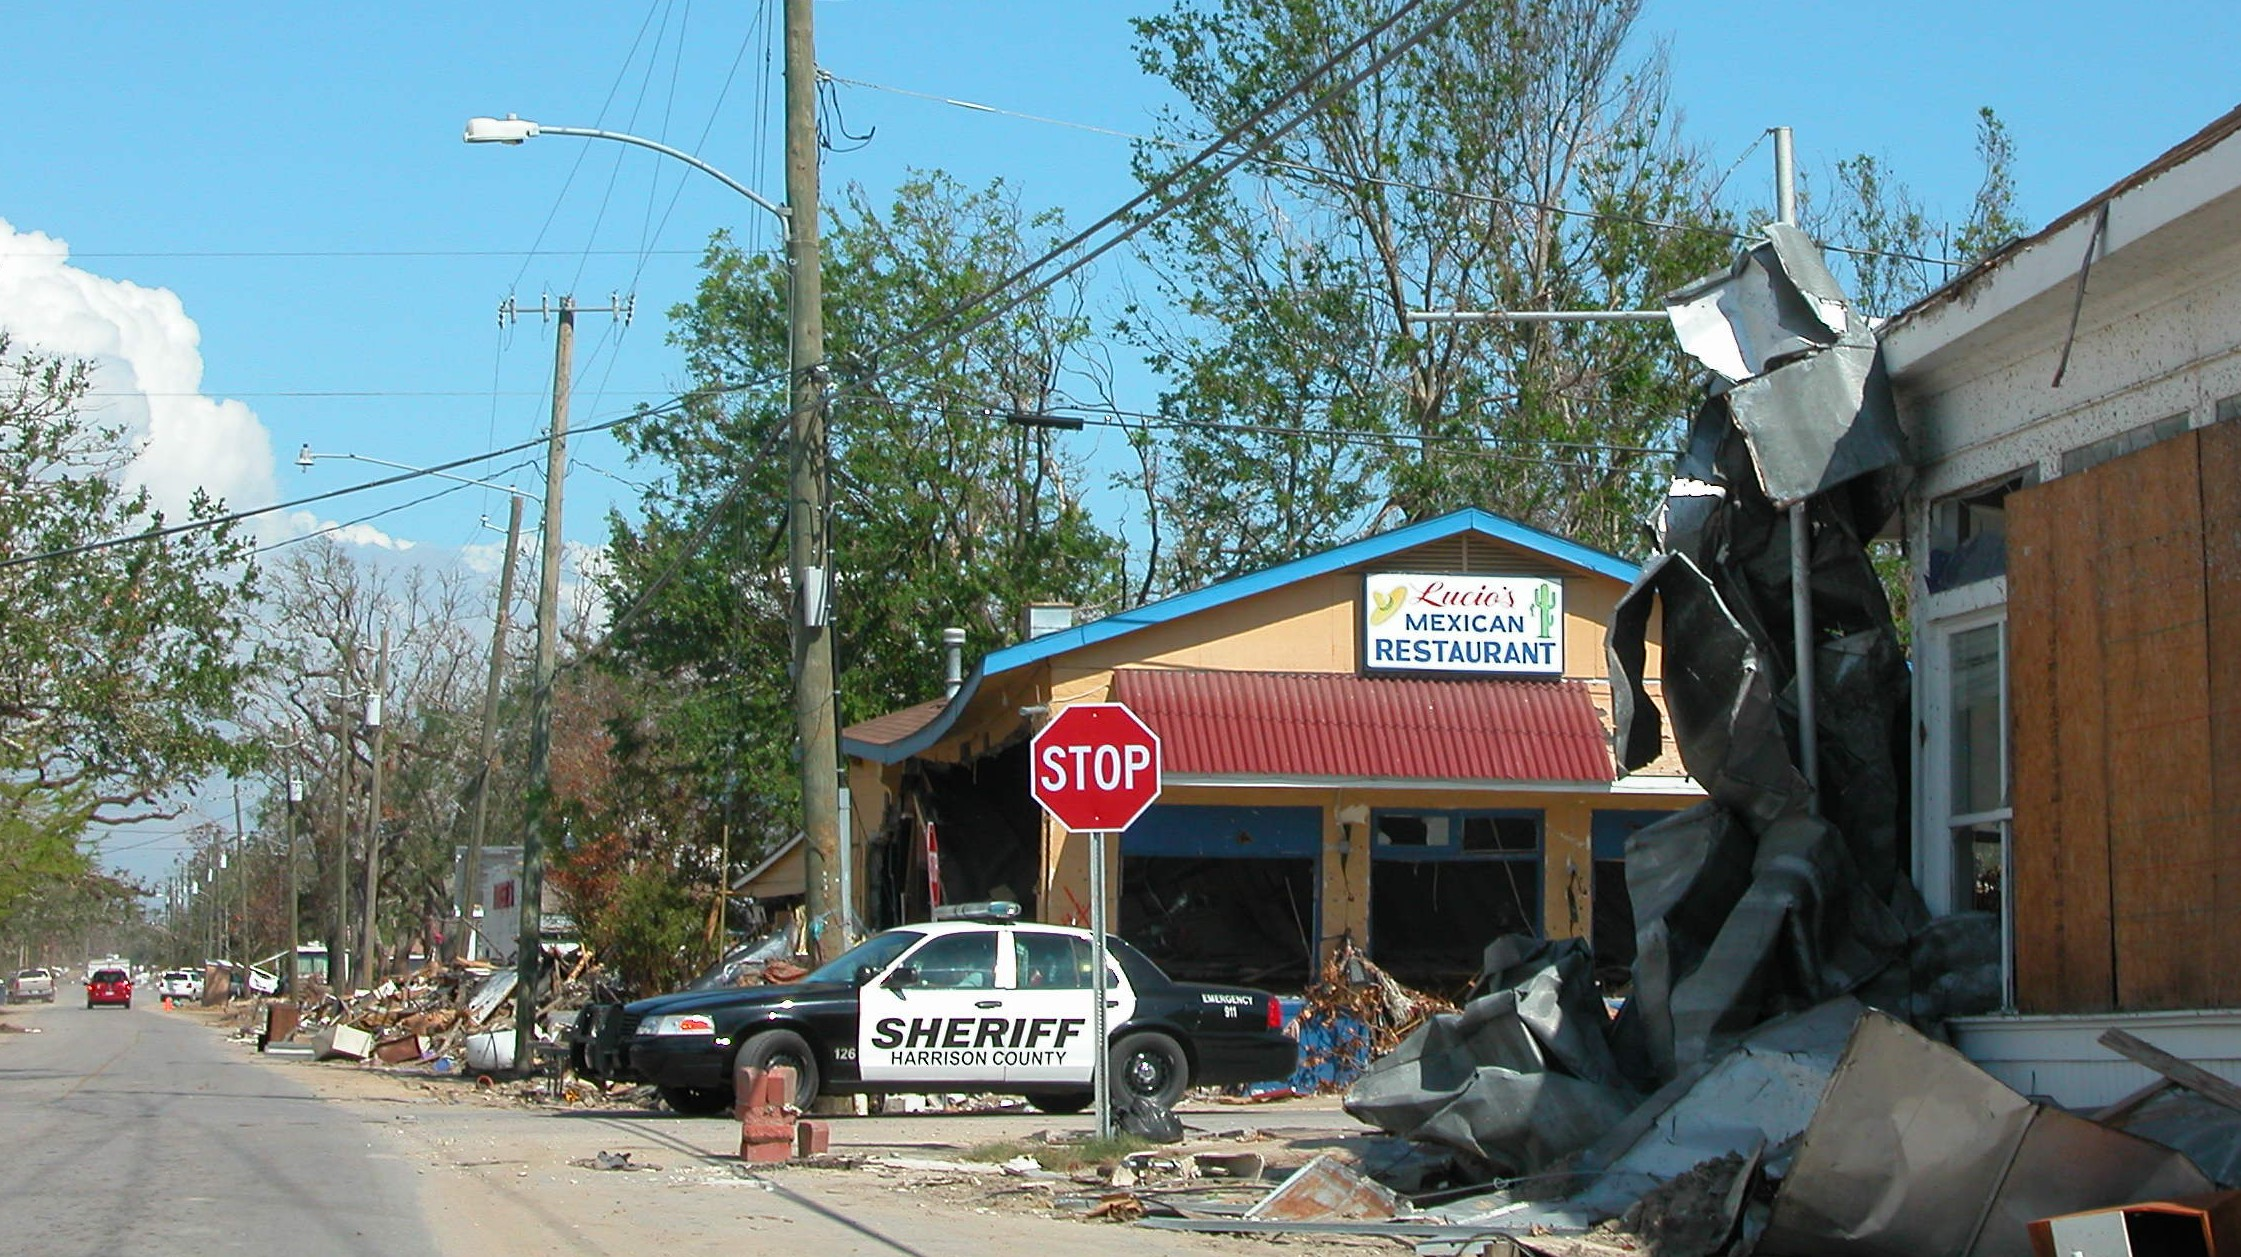 "18. Photo shows the heightened police presence in Long Beach, Mississippi in the aftermath of Katrina. Note the trash and debris lining the roadways. ""I couldn't imagine facing the debris and devastation every single day. It was everywhere, and there was no escaping it."" - David Aft"